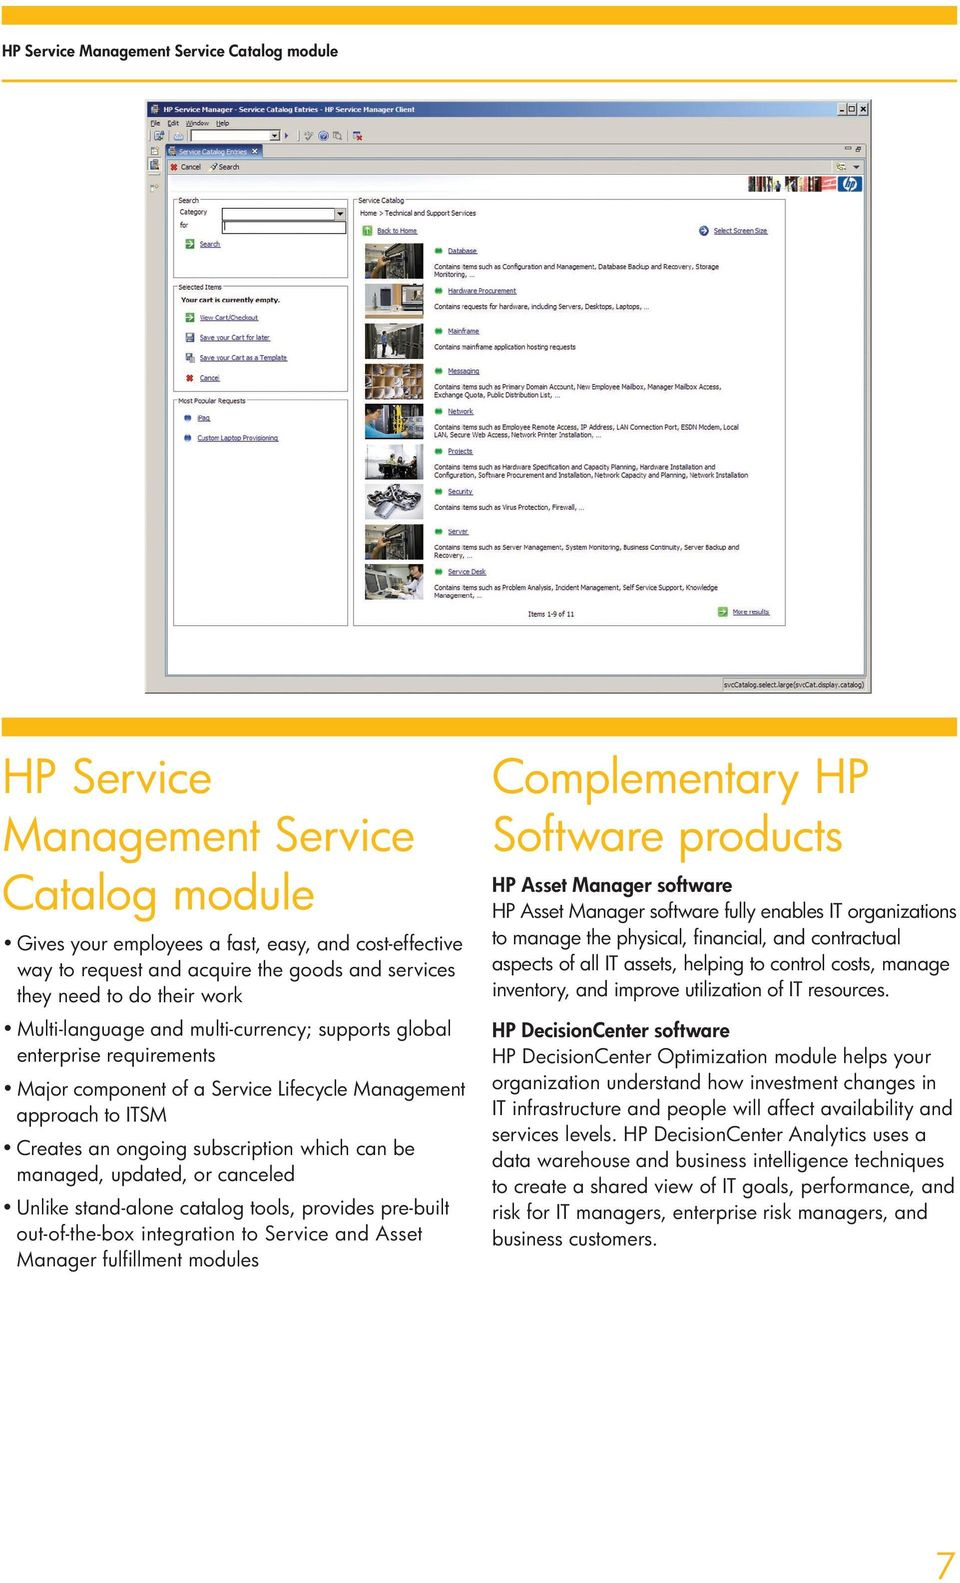 canceled Unlike stand-alone catalog tools, provides pre-built out-of-the-box integration to Service and Asset Manager fulfillment modules Complementary HP Software products HP Asset Manager software